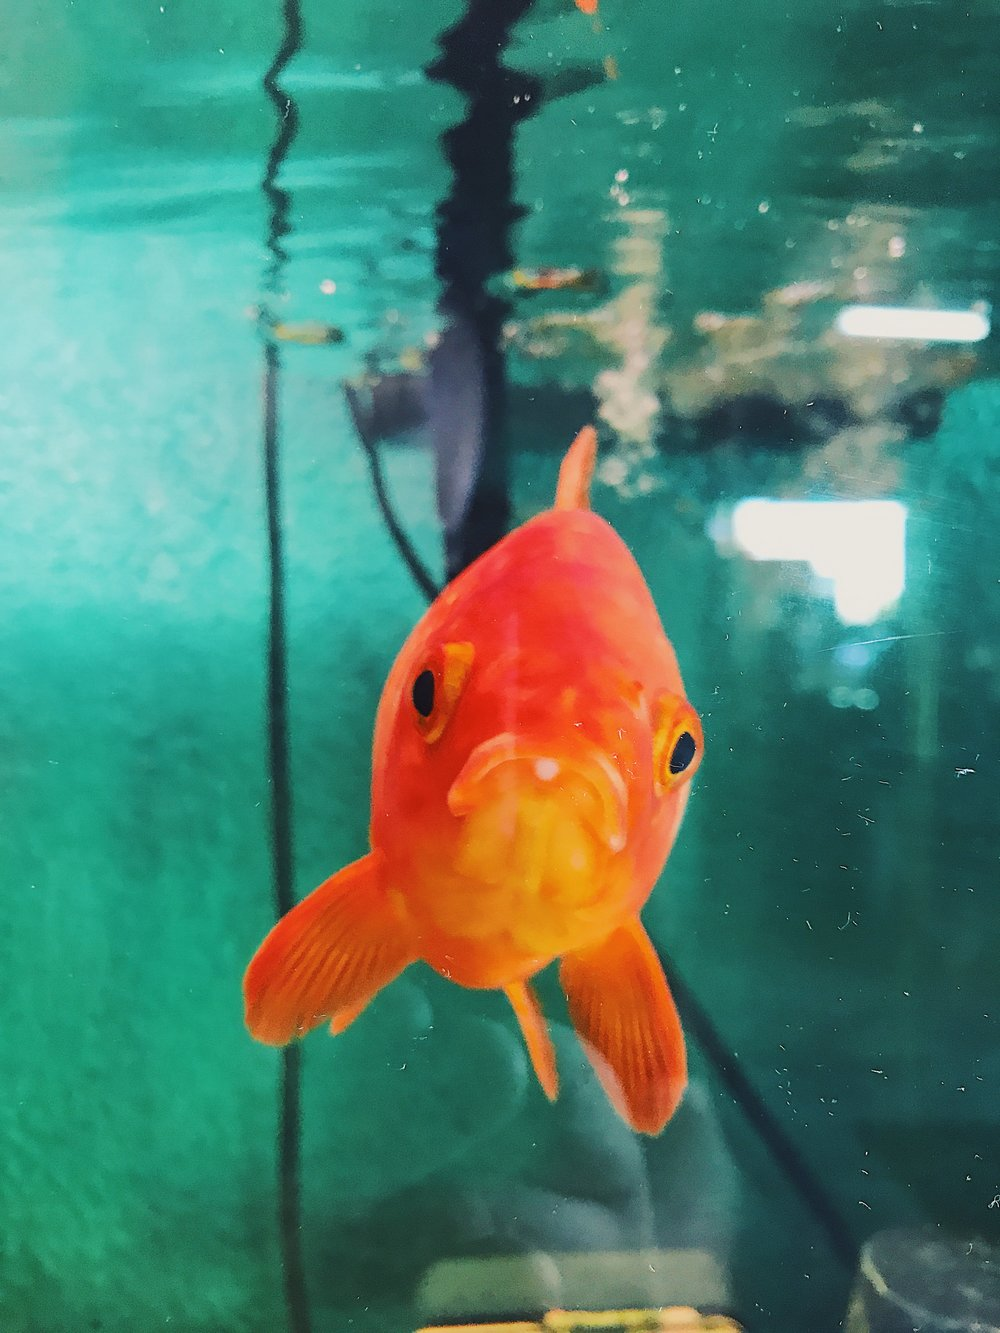 Patrick the Gold Fish